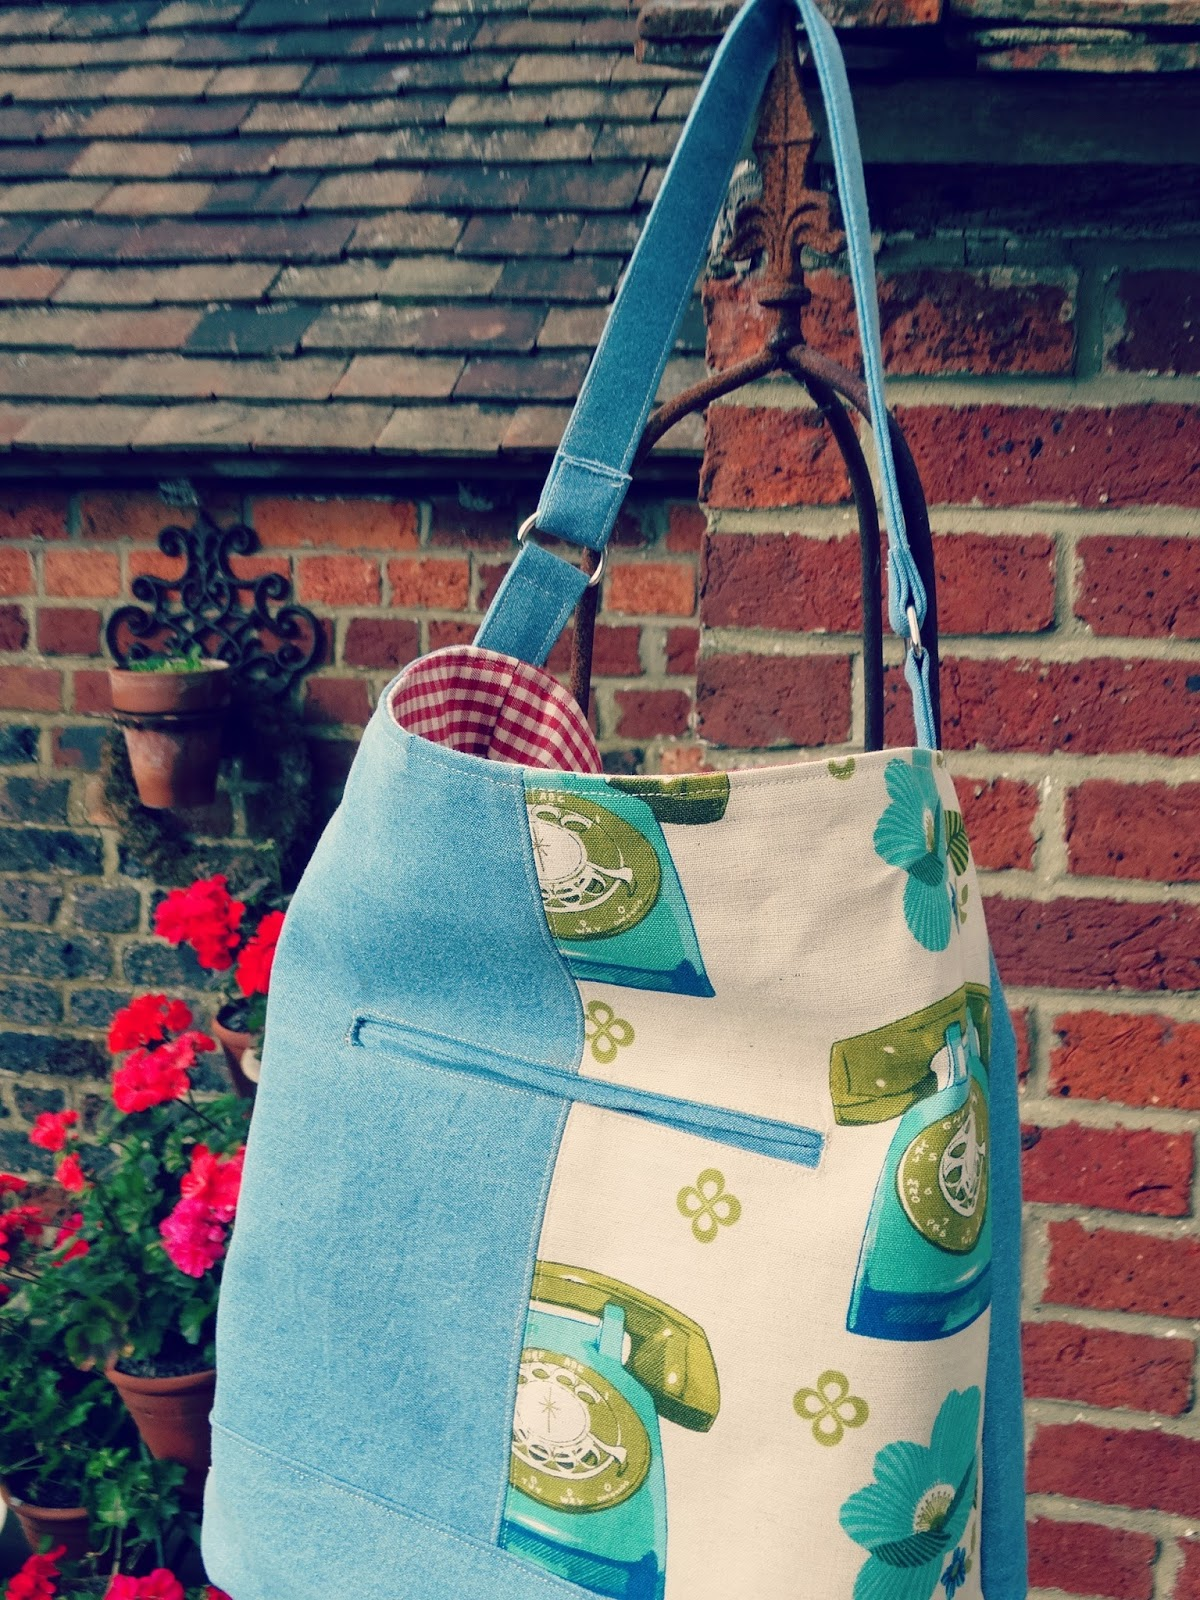 My Latest Make Is The Bonnie Bucket Bag From Swoon Patterns I Ve Made Quite A Few Bags Over Last Yearostly These Have Been Self Drafted Tote